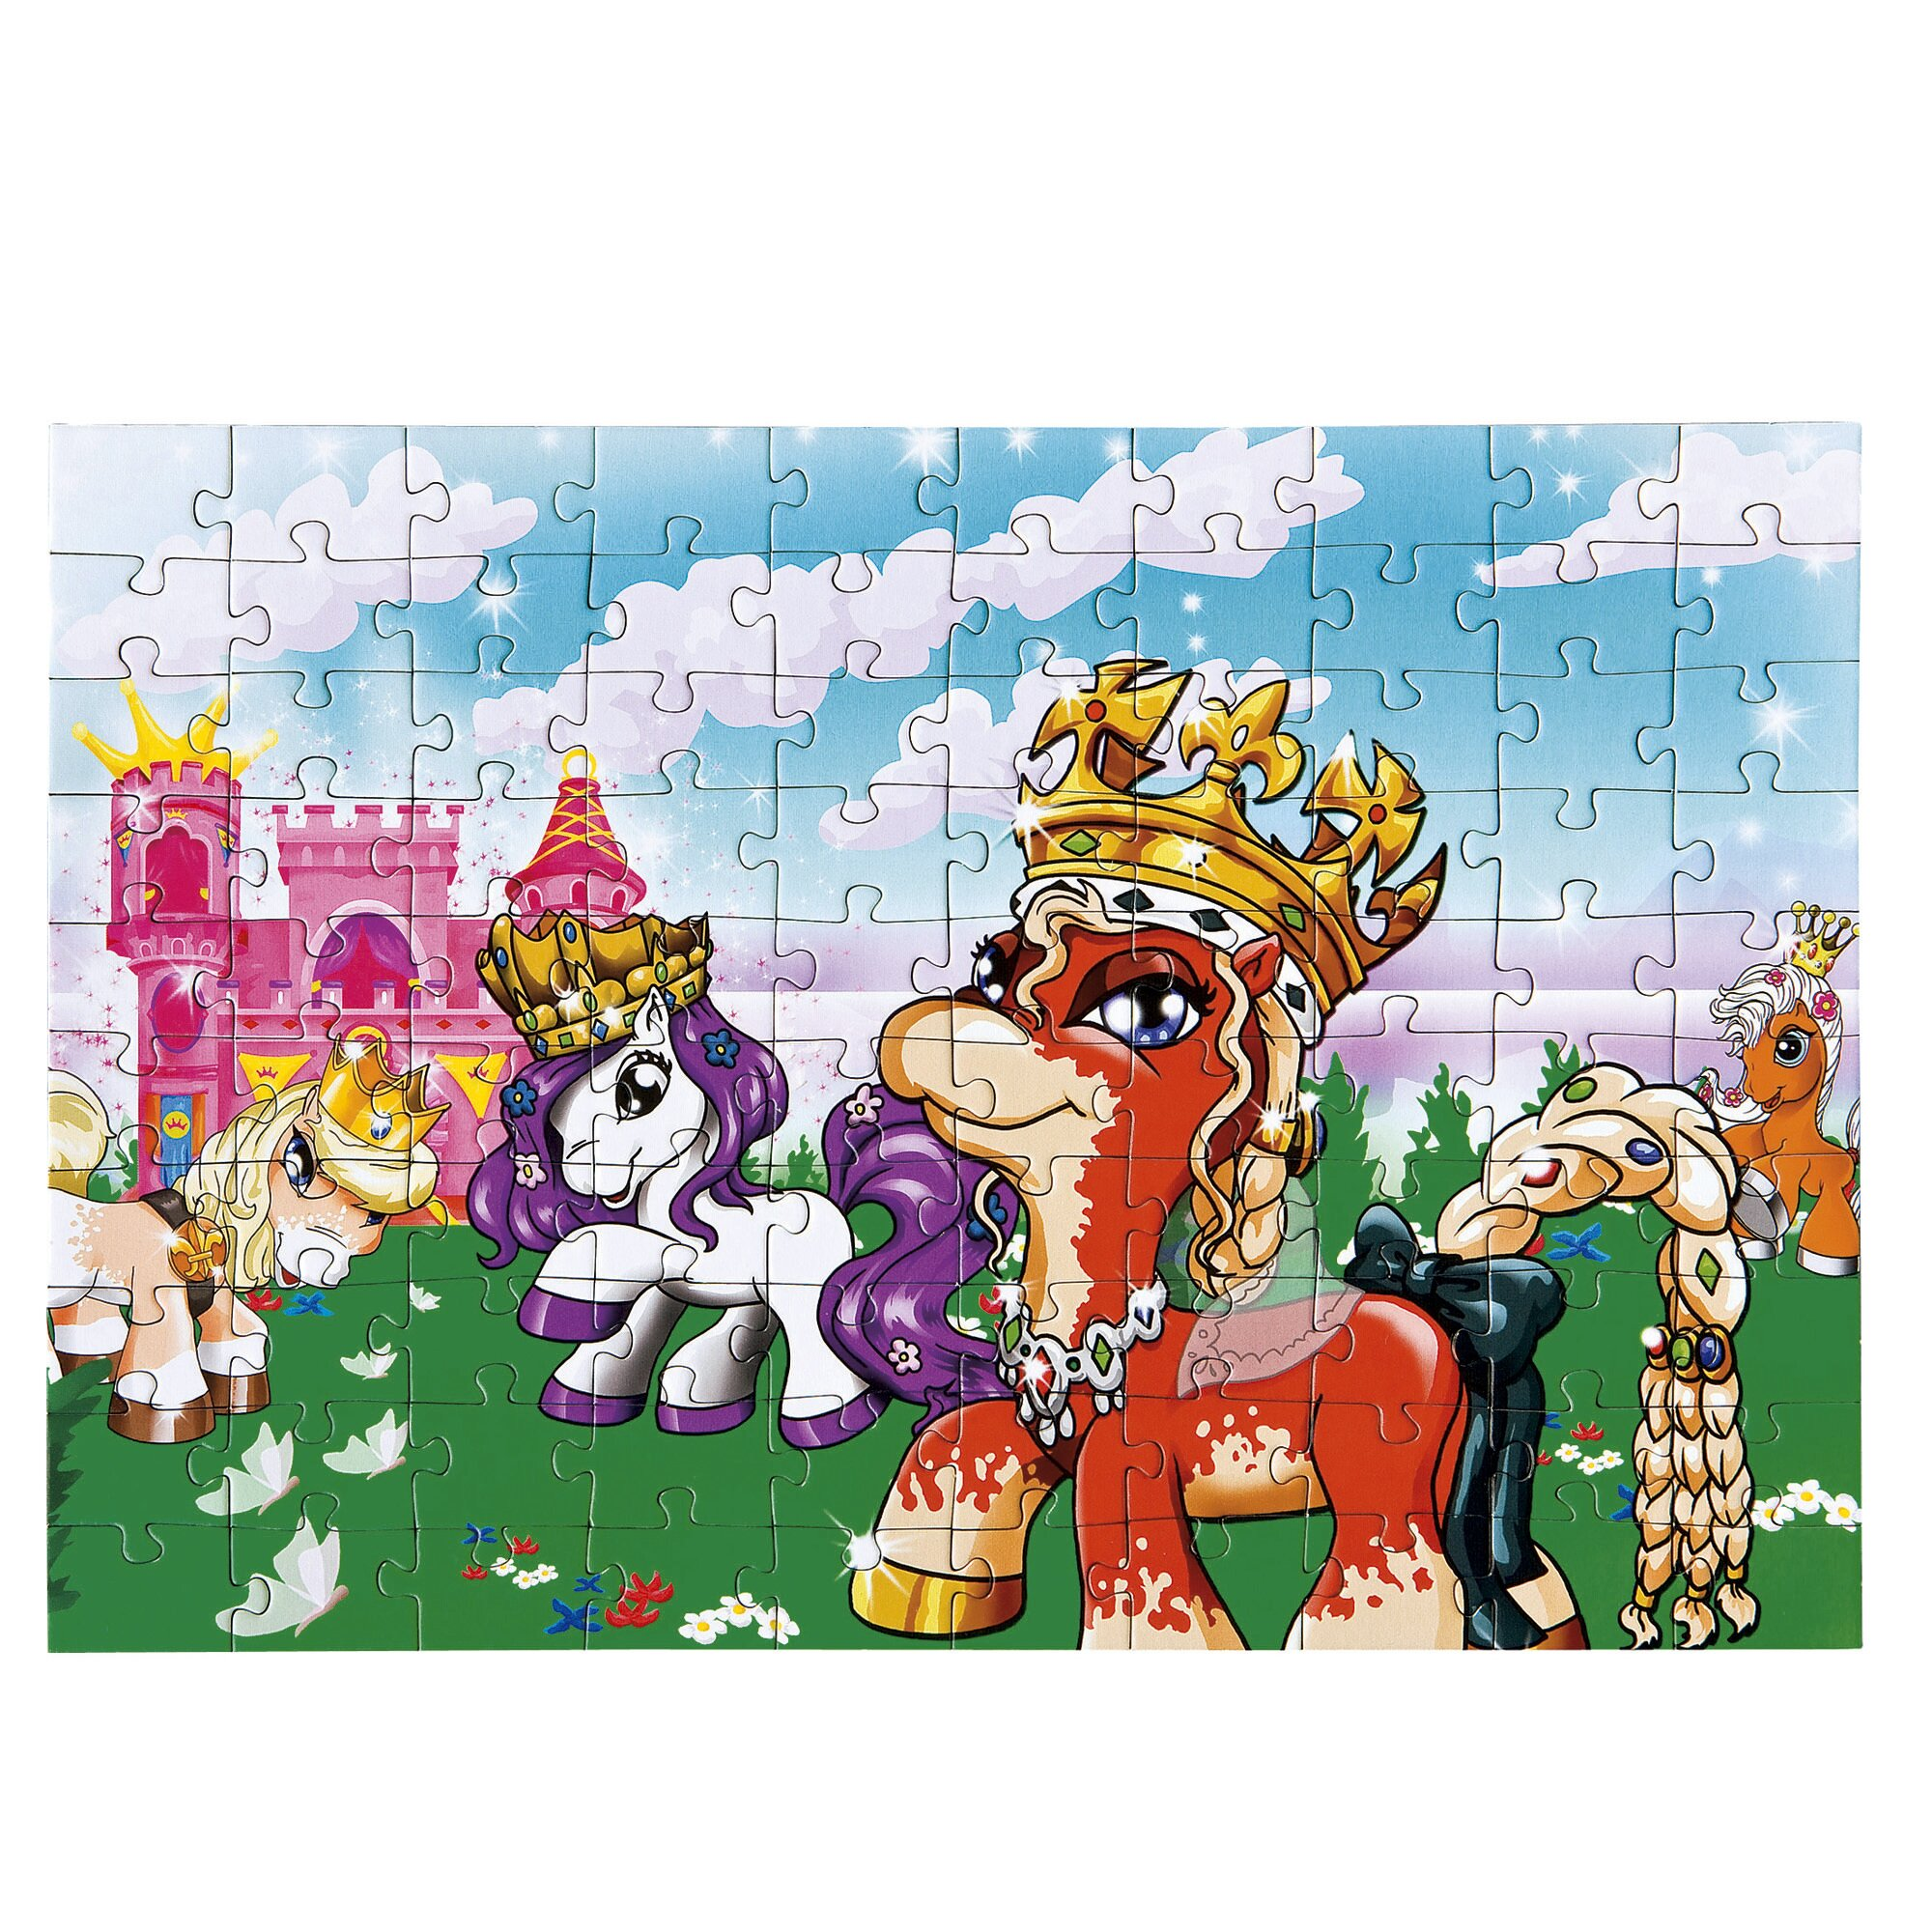 Un monde color de 100 pi ces le puzzle filly princess - Code reduction maison du monde ...